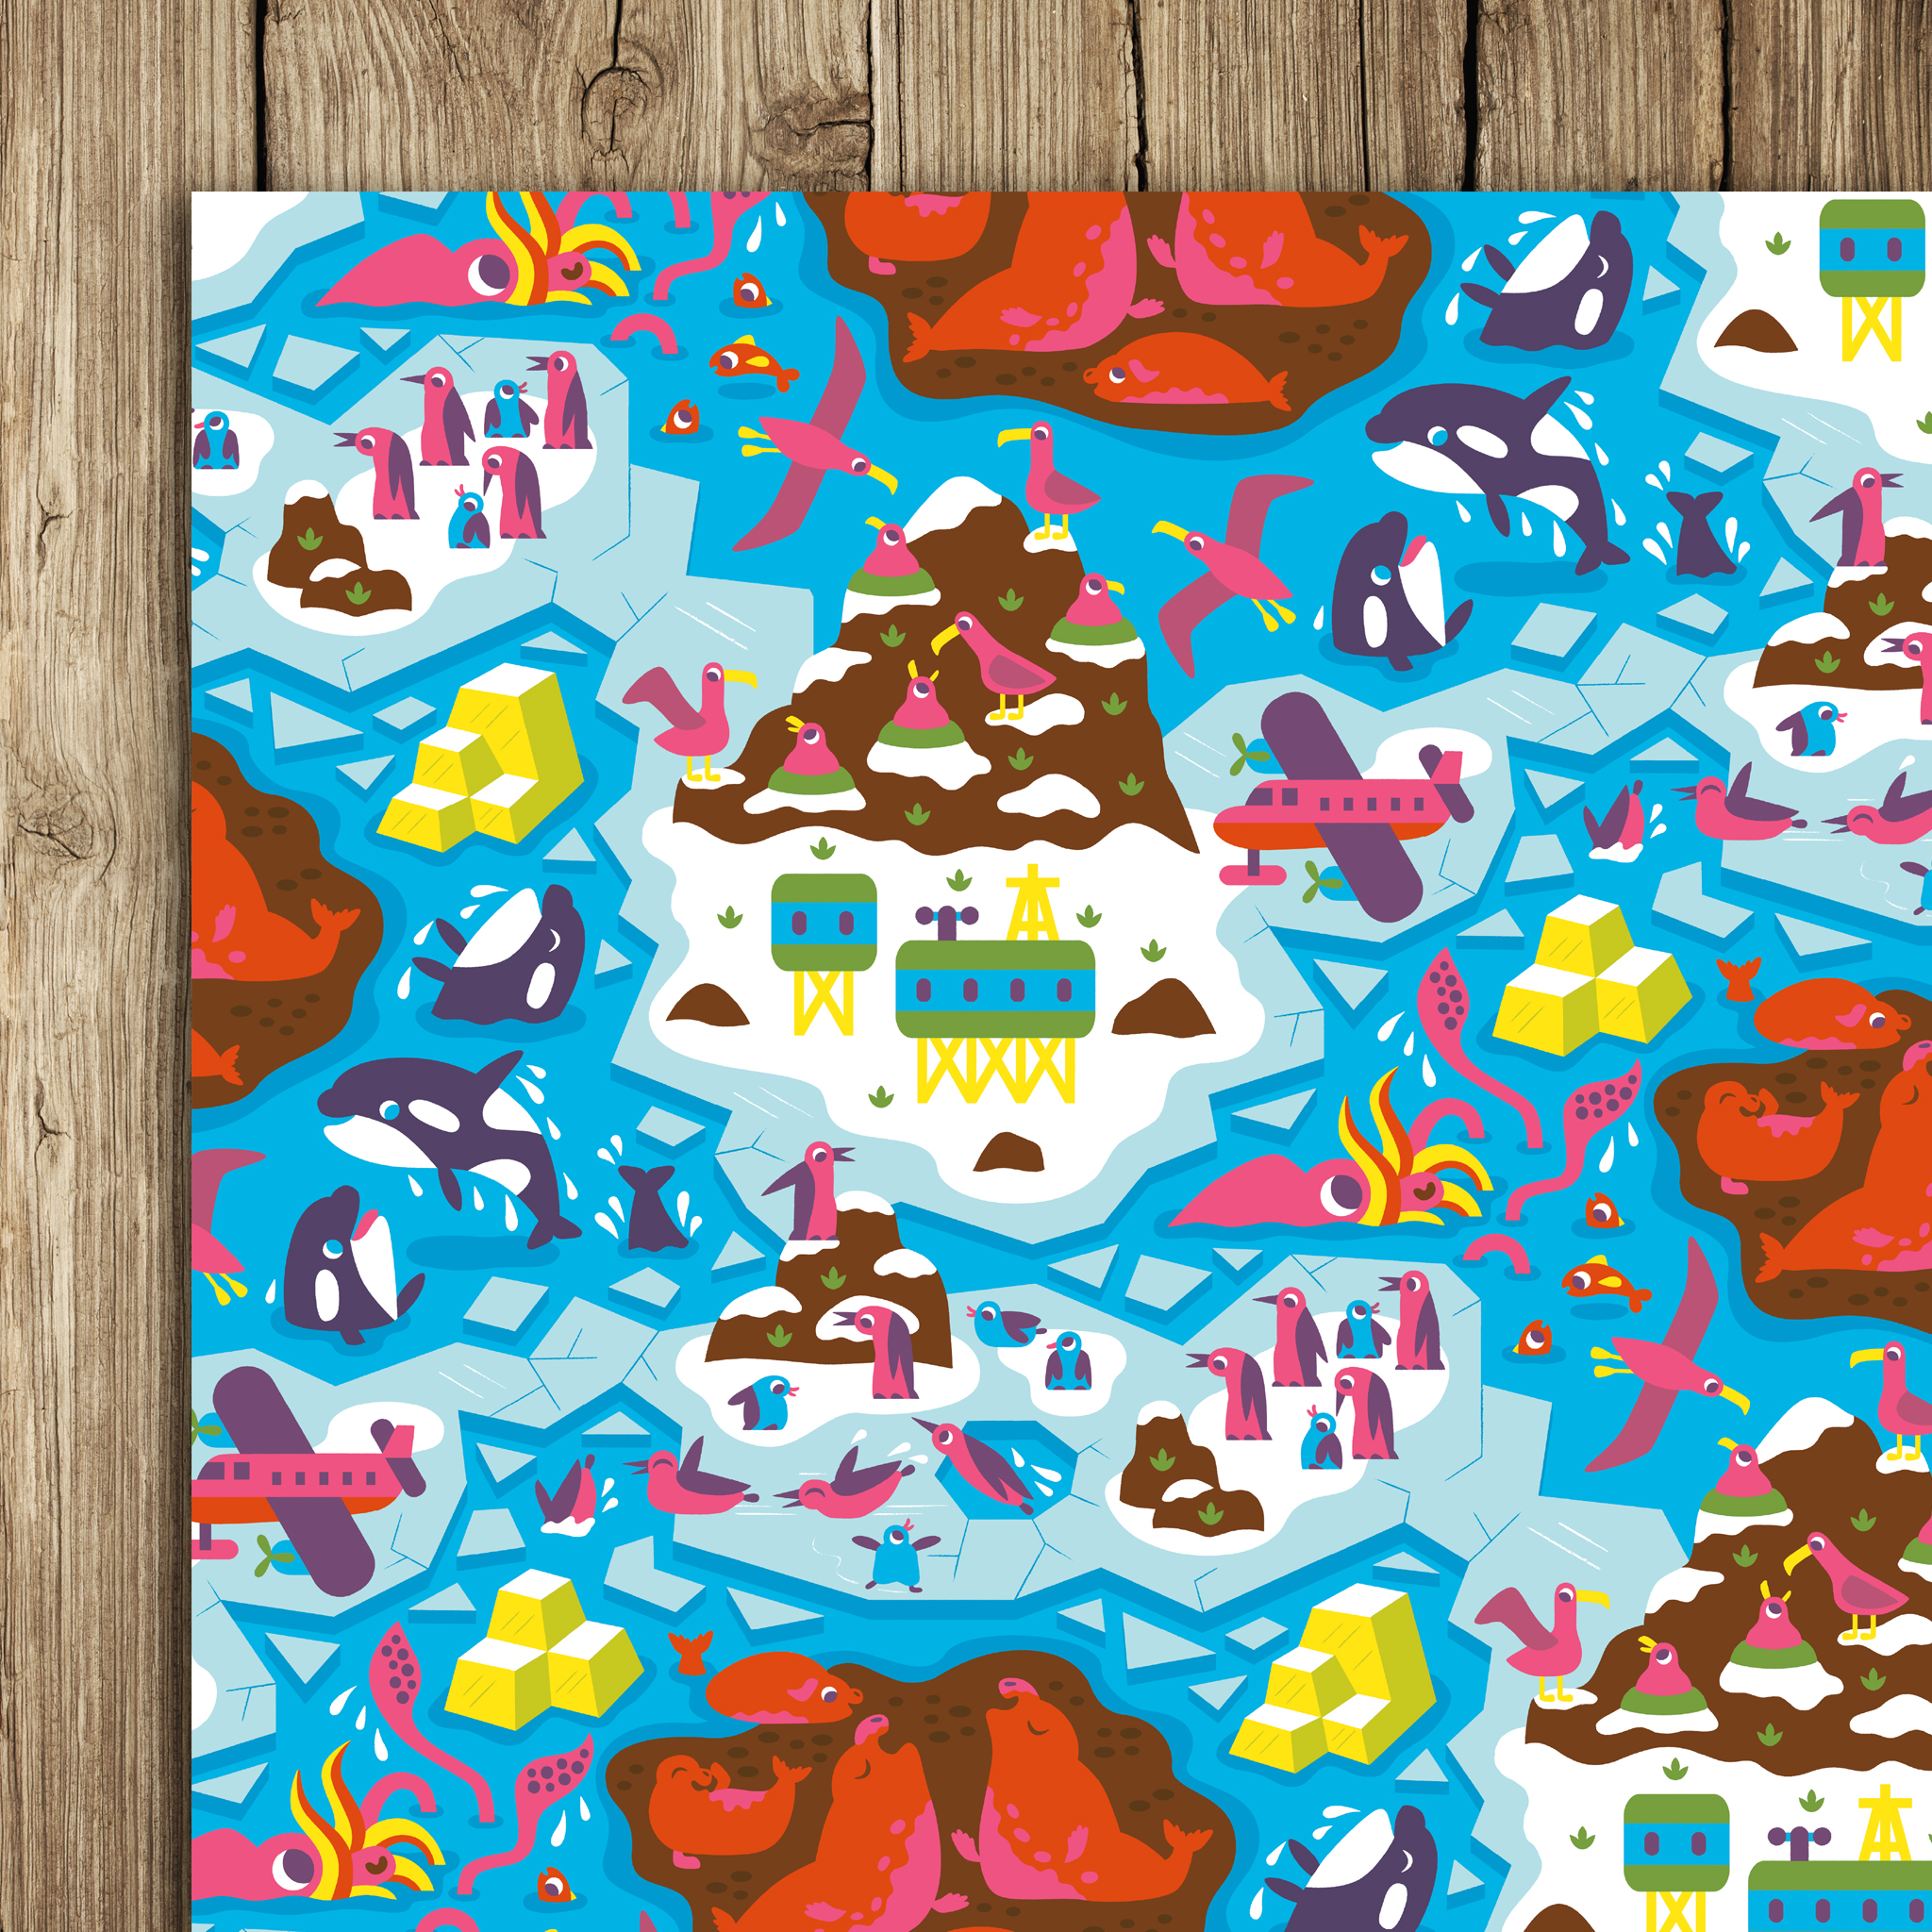 Antarctic Wrap (5 sheets)